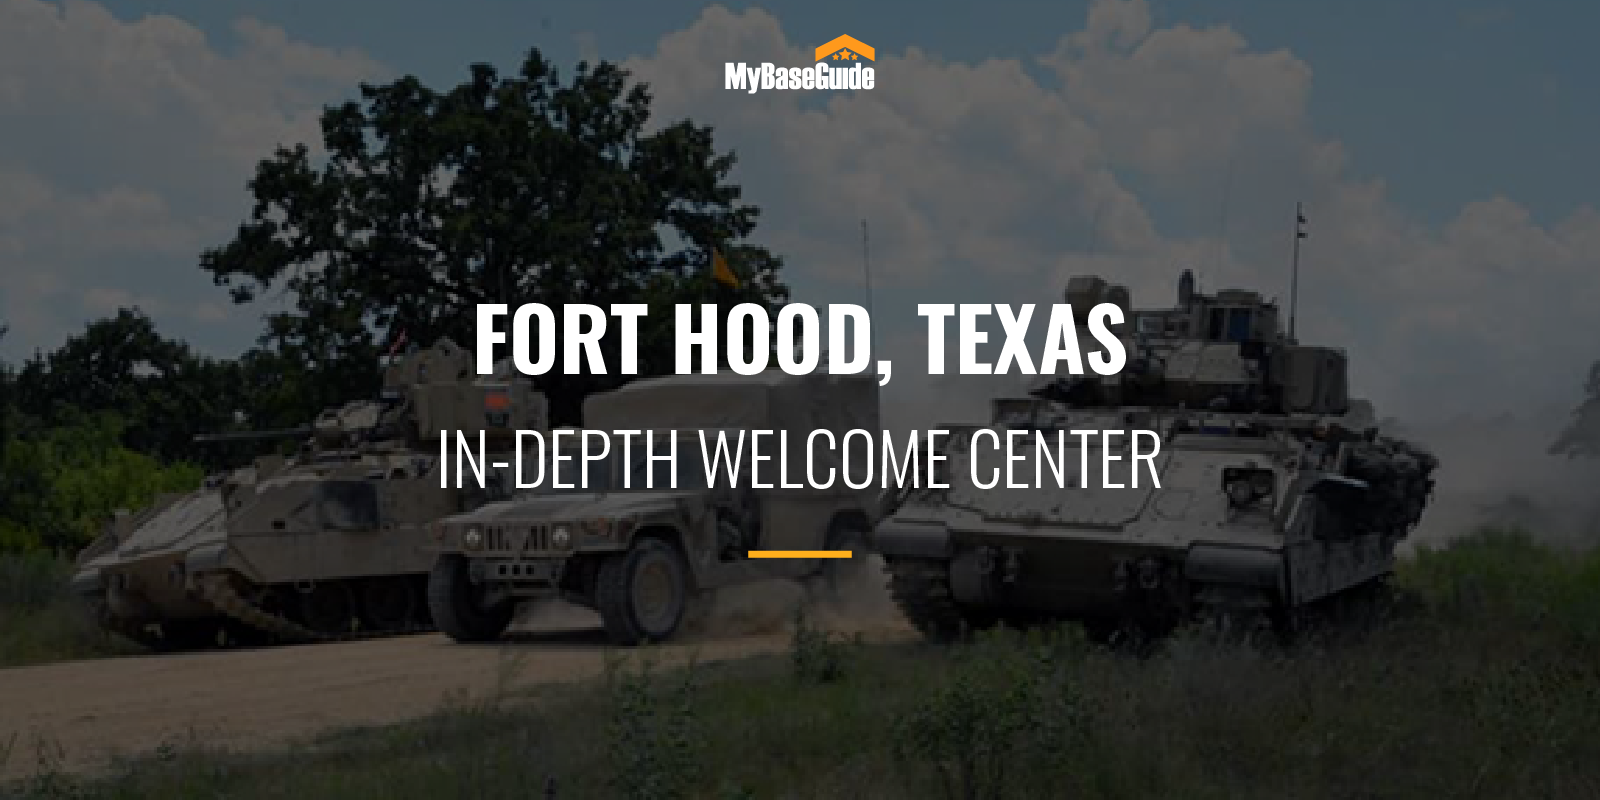 Fort Hood In-Depth Welcome Center